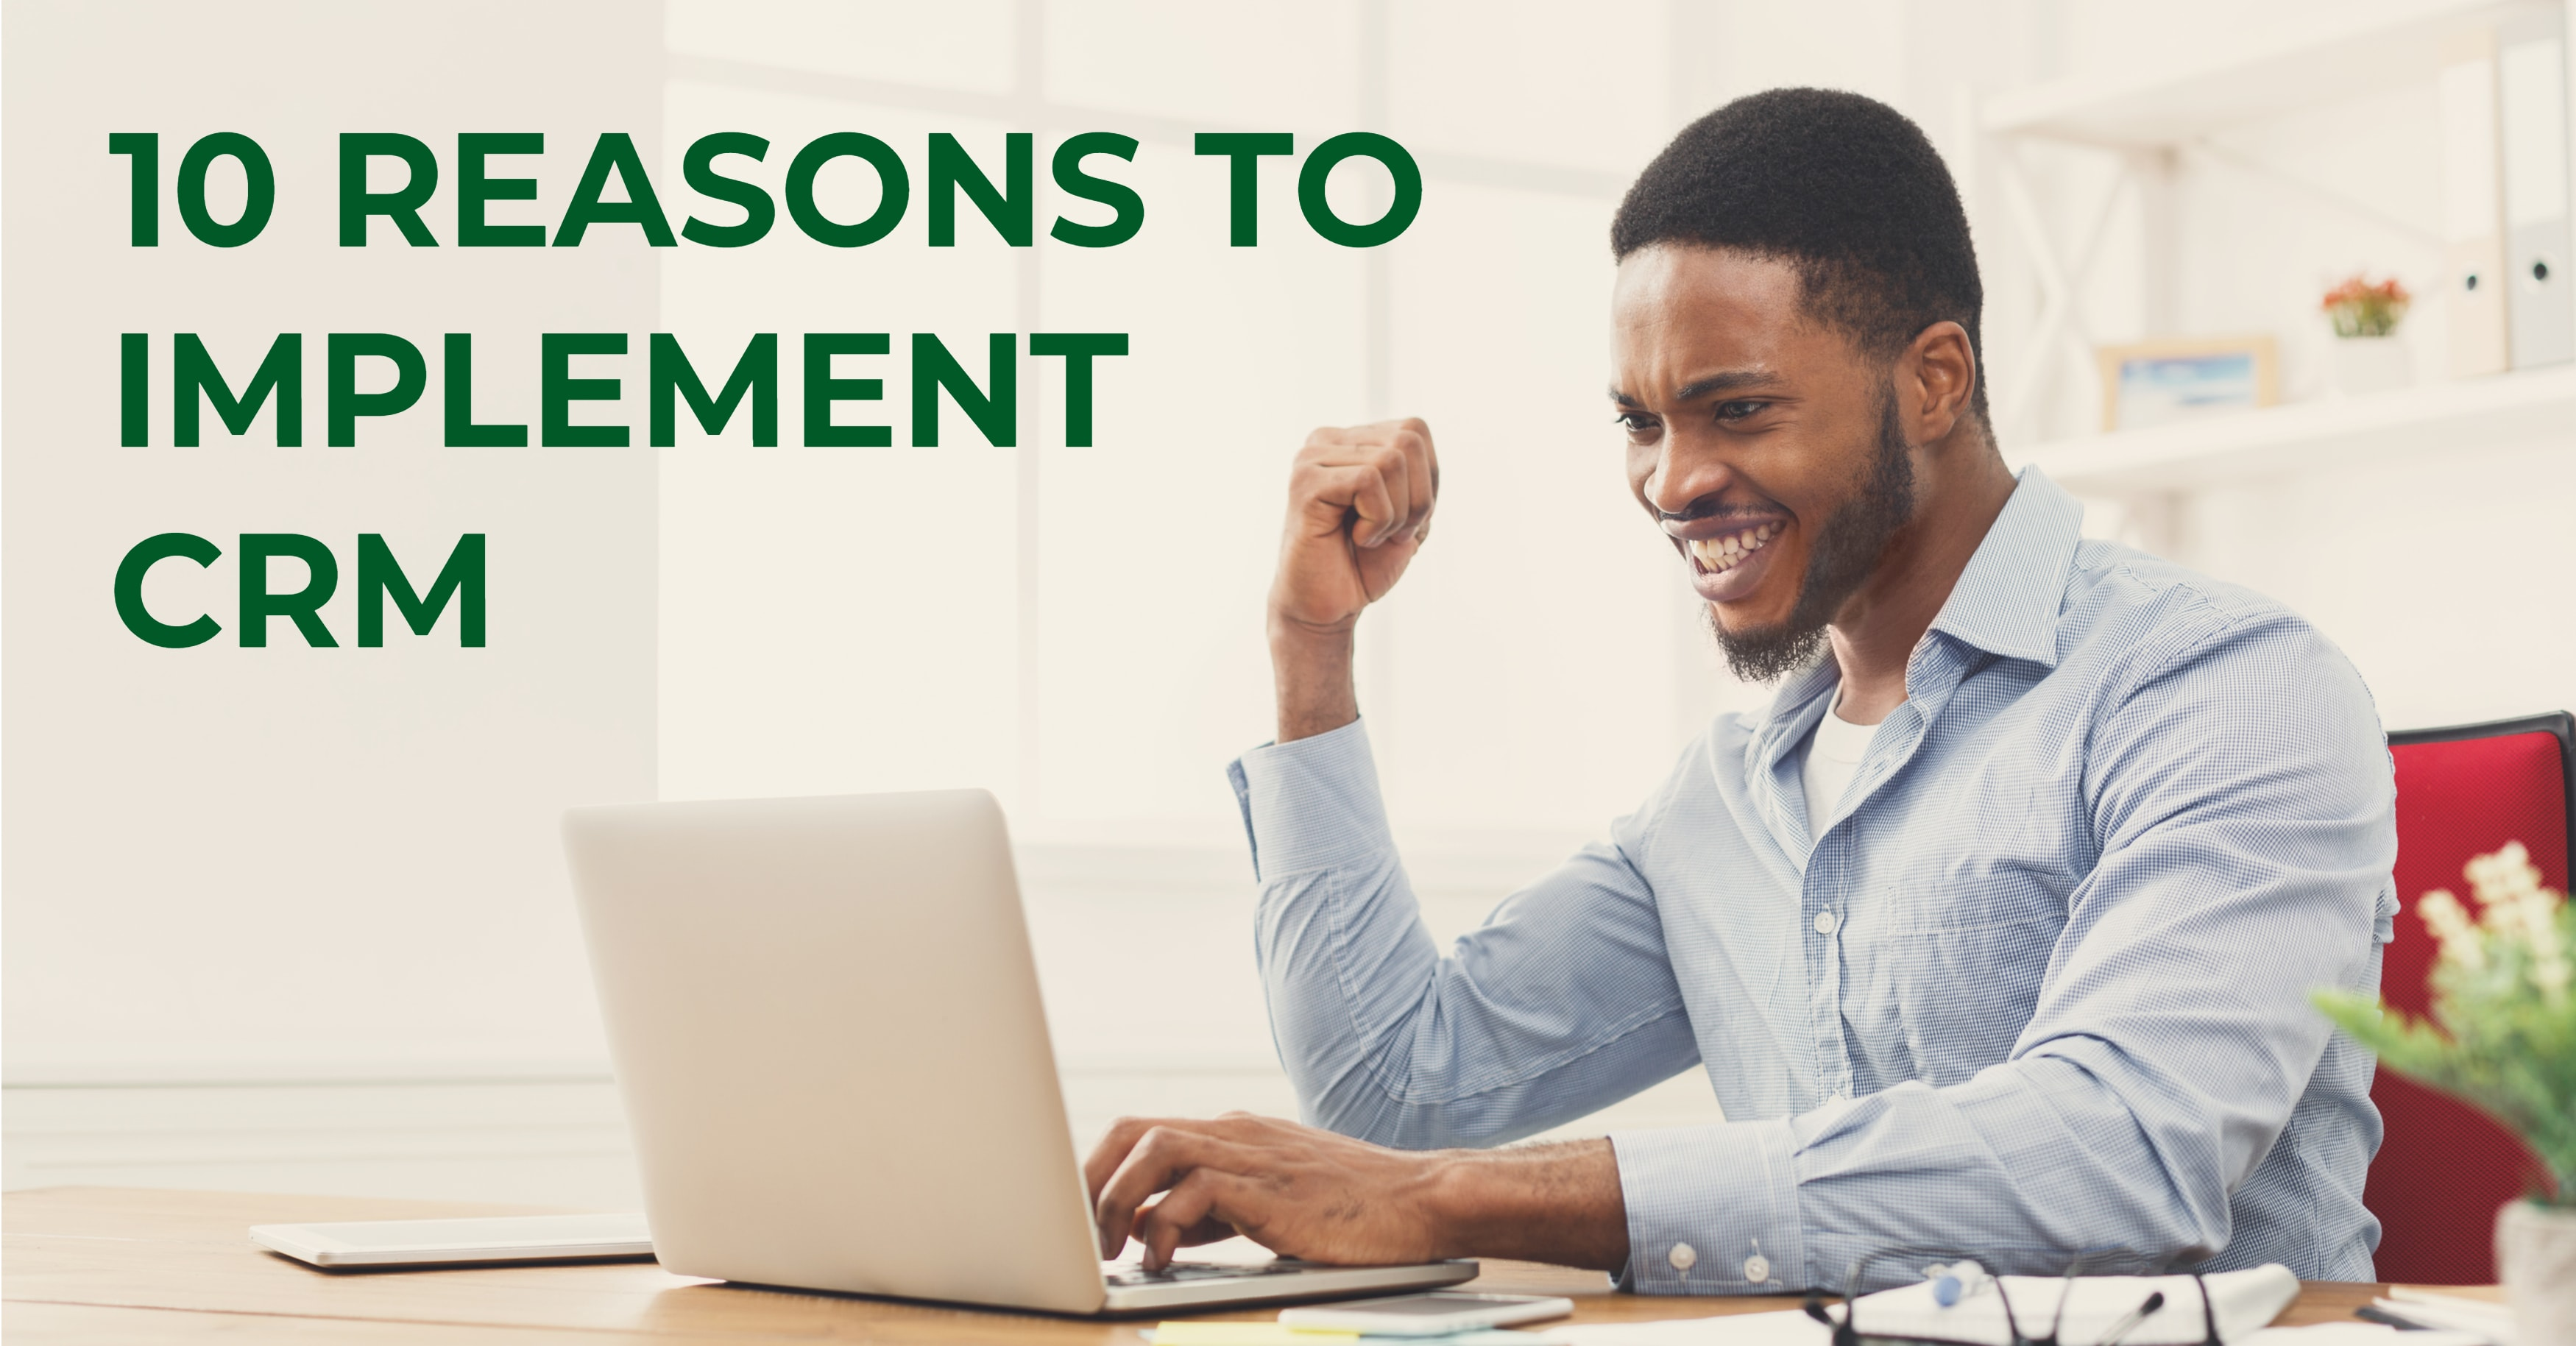 10 Reasons to Implement CRM